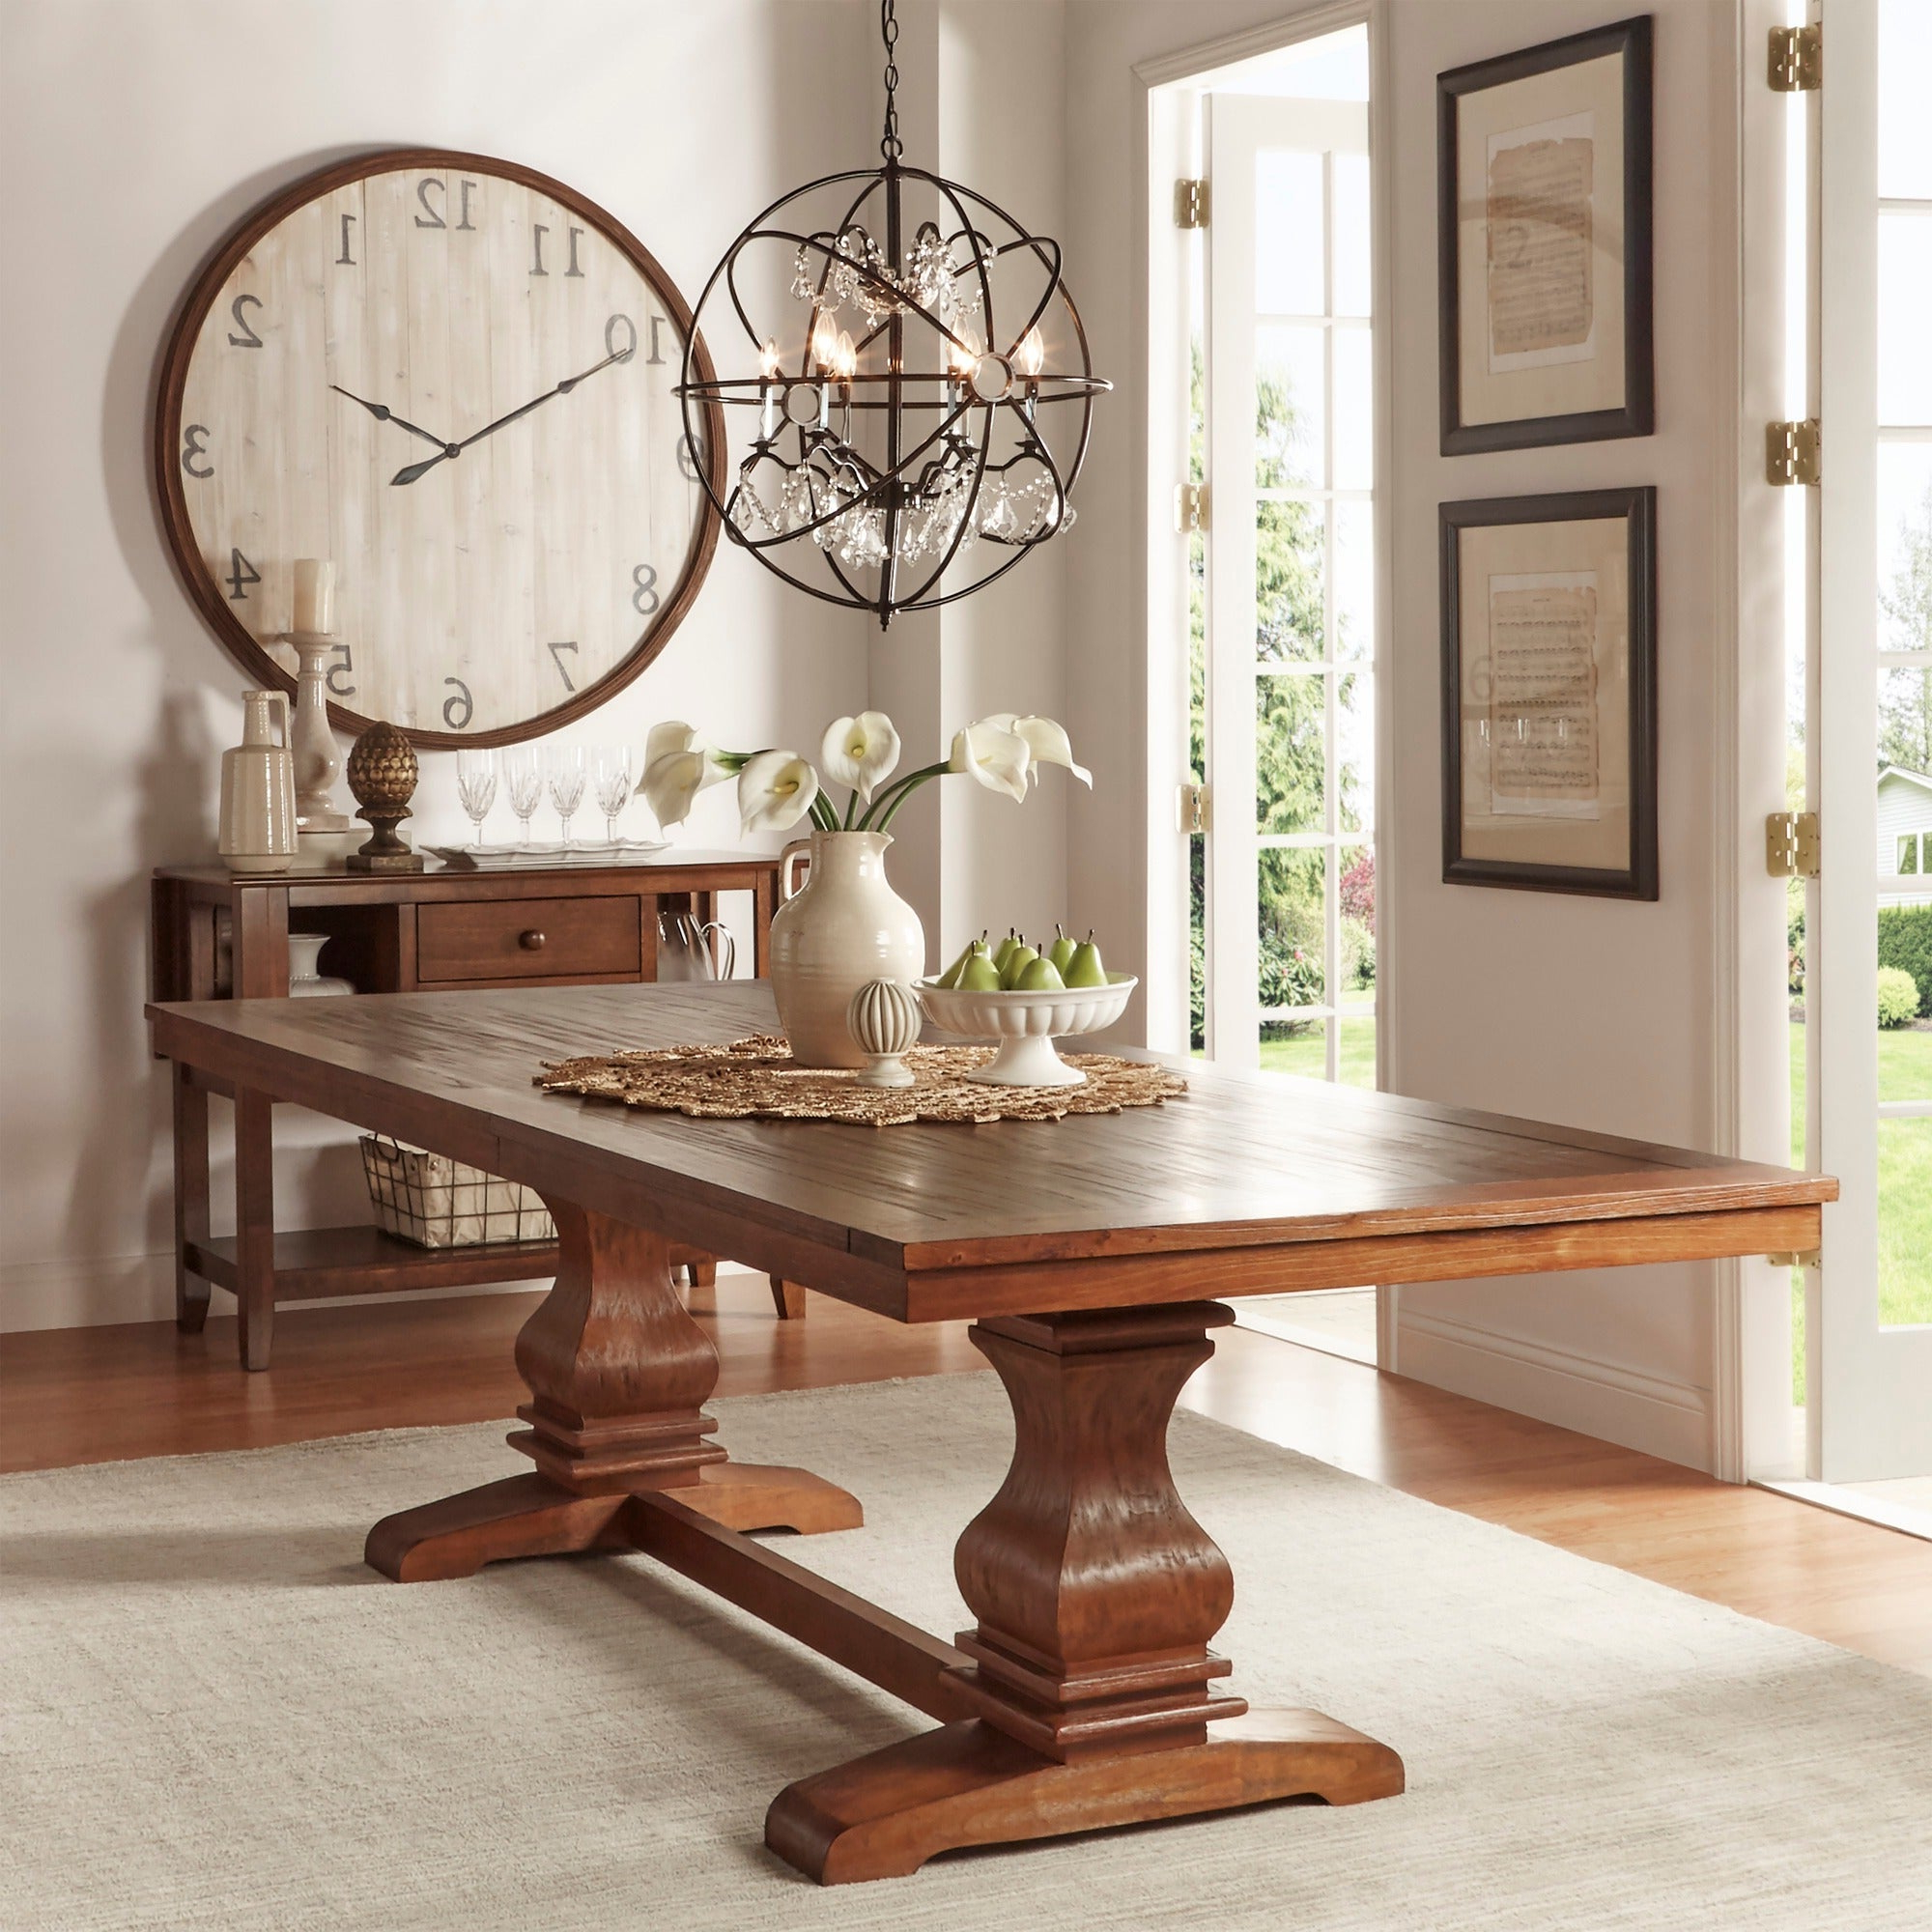 Current Atelier Burnished Brown Pedestal Extending Dining Tableinspire Q Classic For Alfresco Brown Benchwright Pedestal Extending Dining Tables (View 15 of 25)